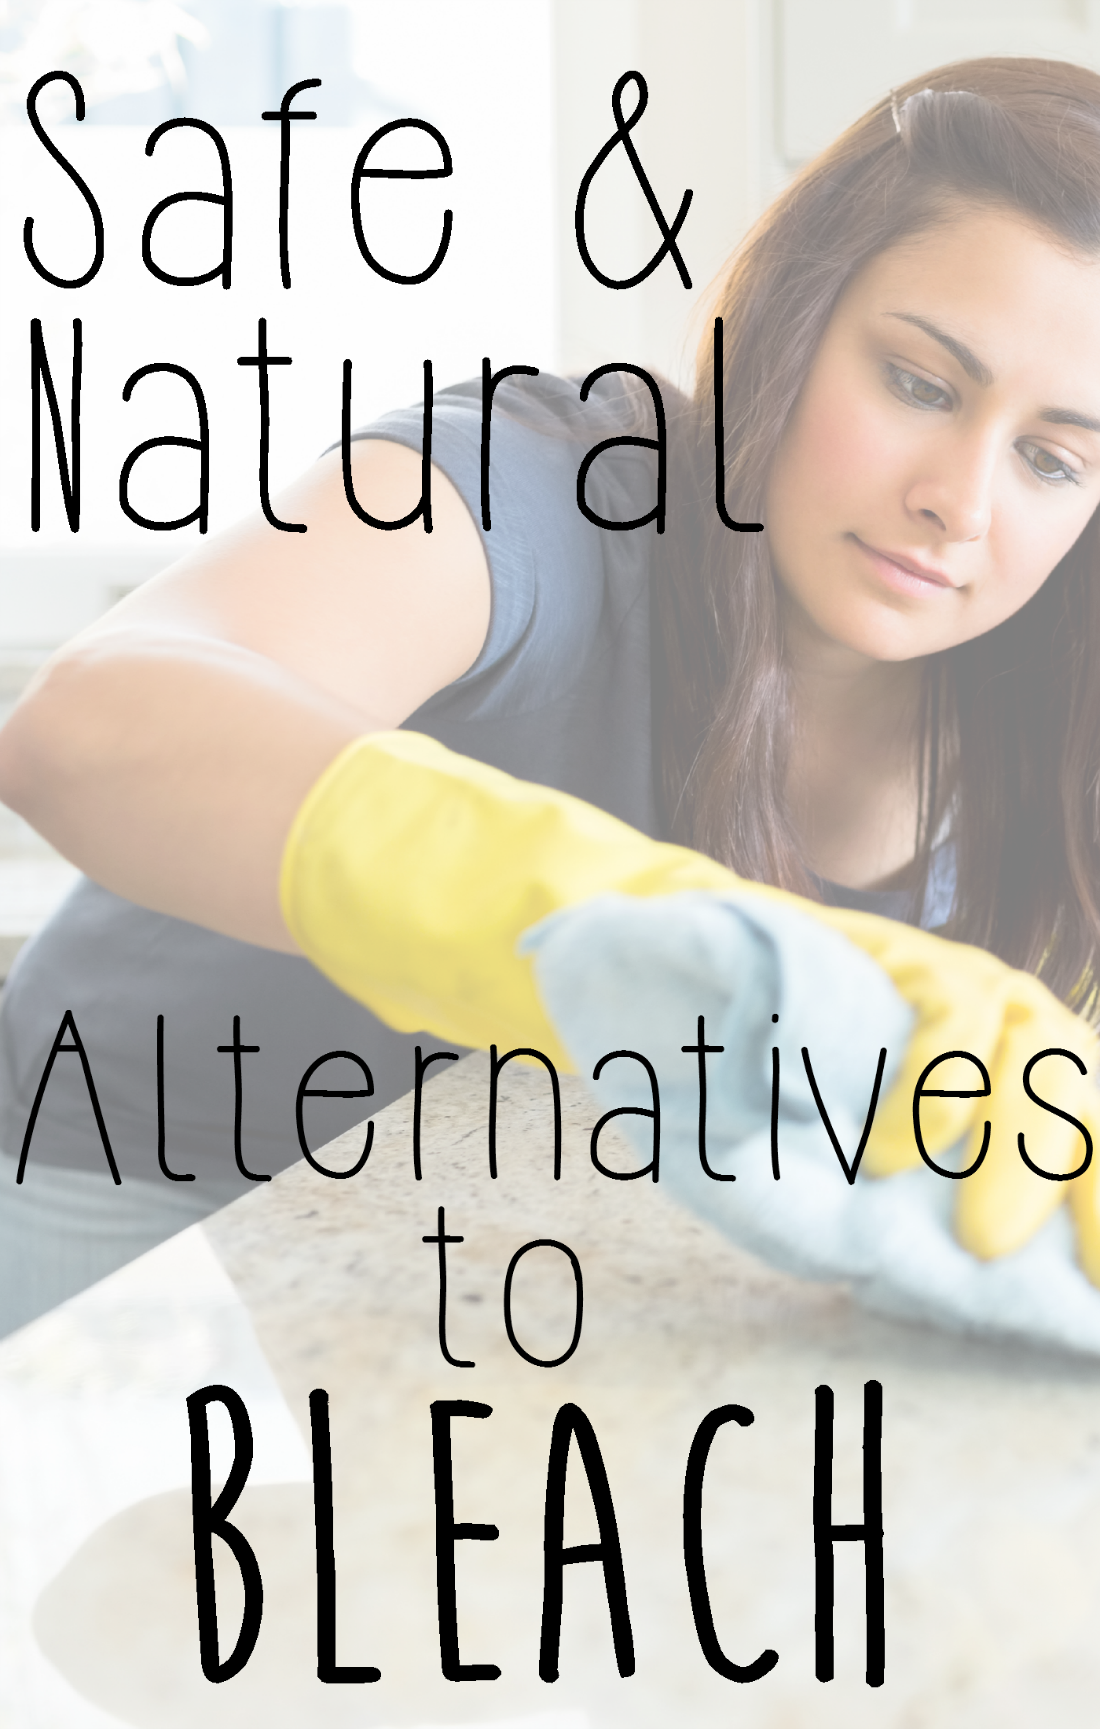 So, you want to naturally whiten your clothes or disinfect your bathroom without using bleach? No worries! There are safe alternatives to bleach, and I'll show you how to use them.